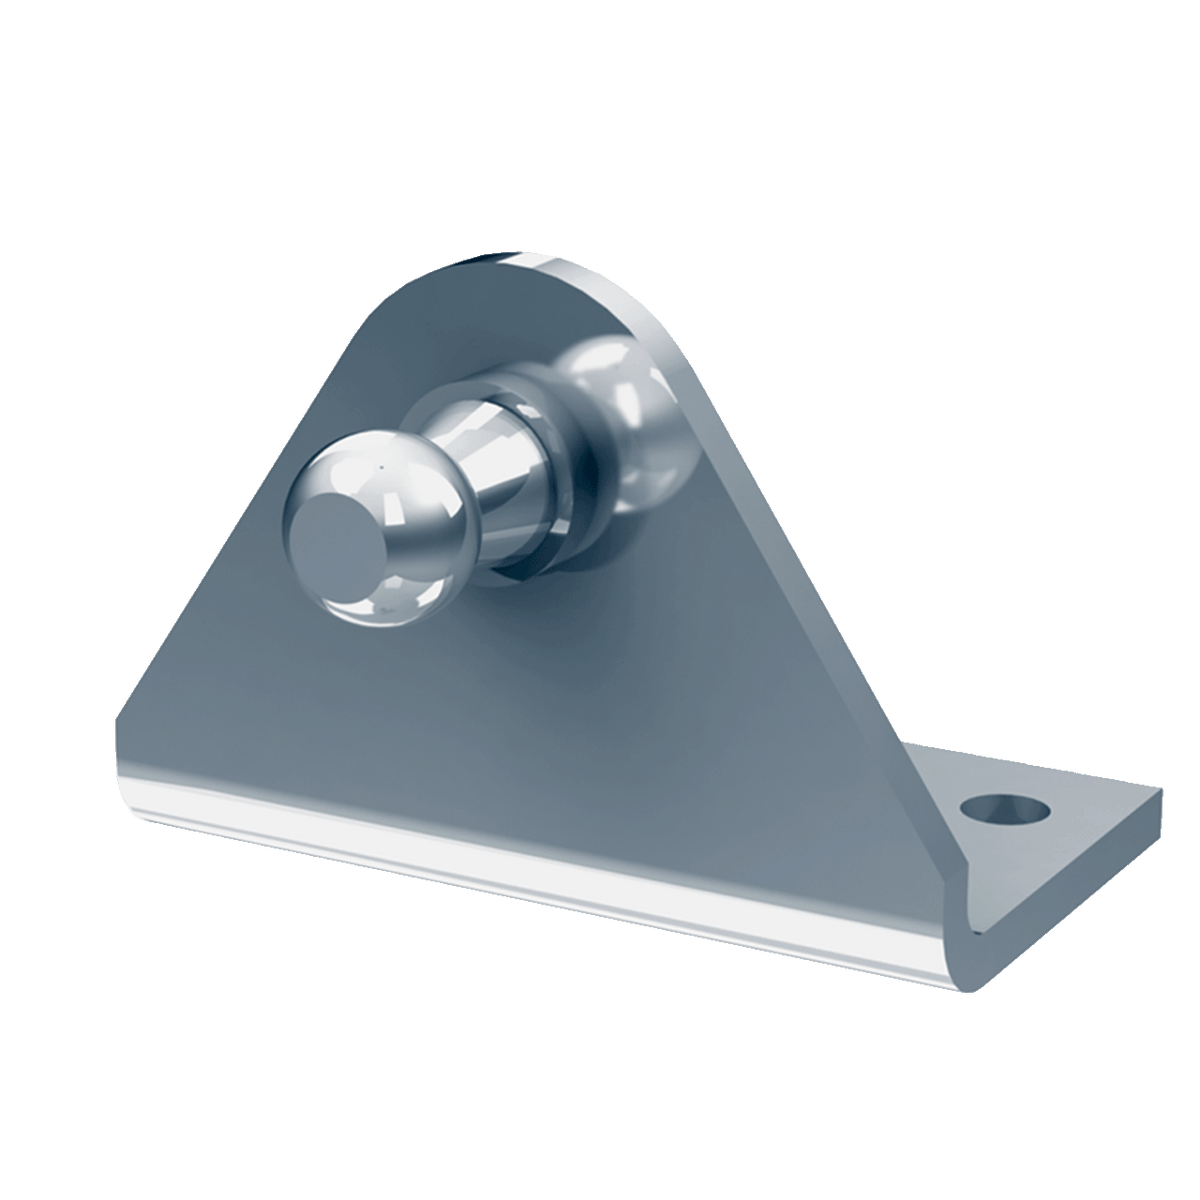 10MM Ball Stud Mounting Bracket, 3-hole Right Angle